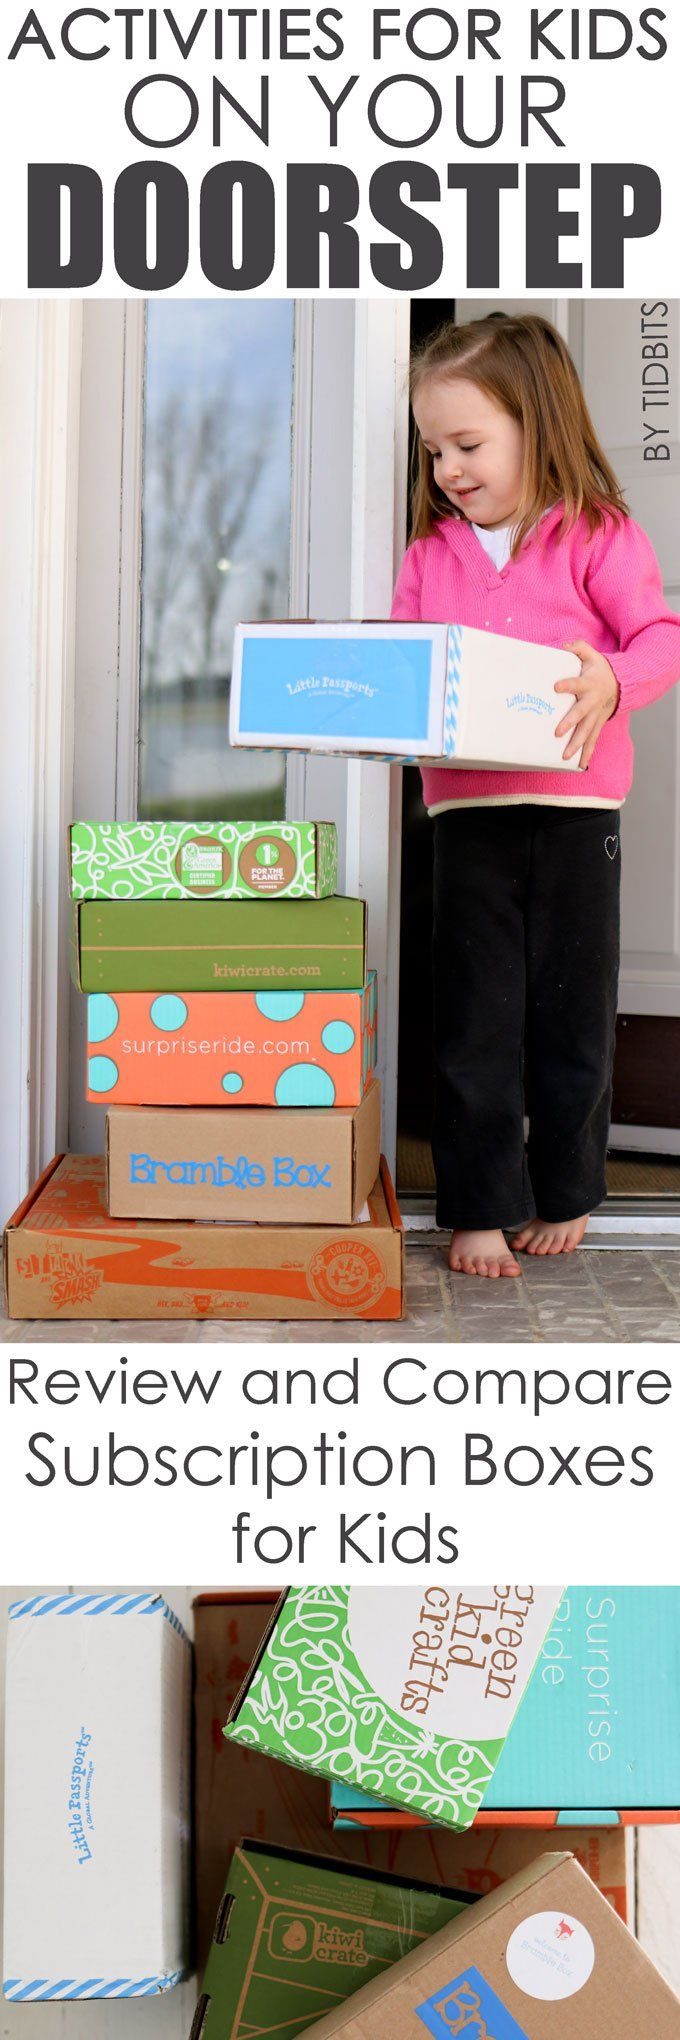 Activities for Kids on Your Doorstep. Review and compare subscription boxes for kids.